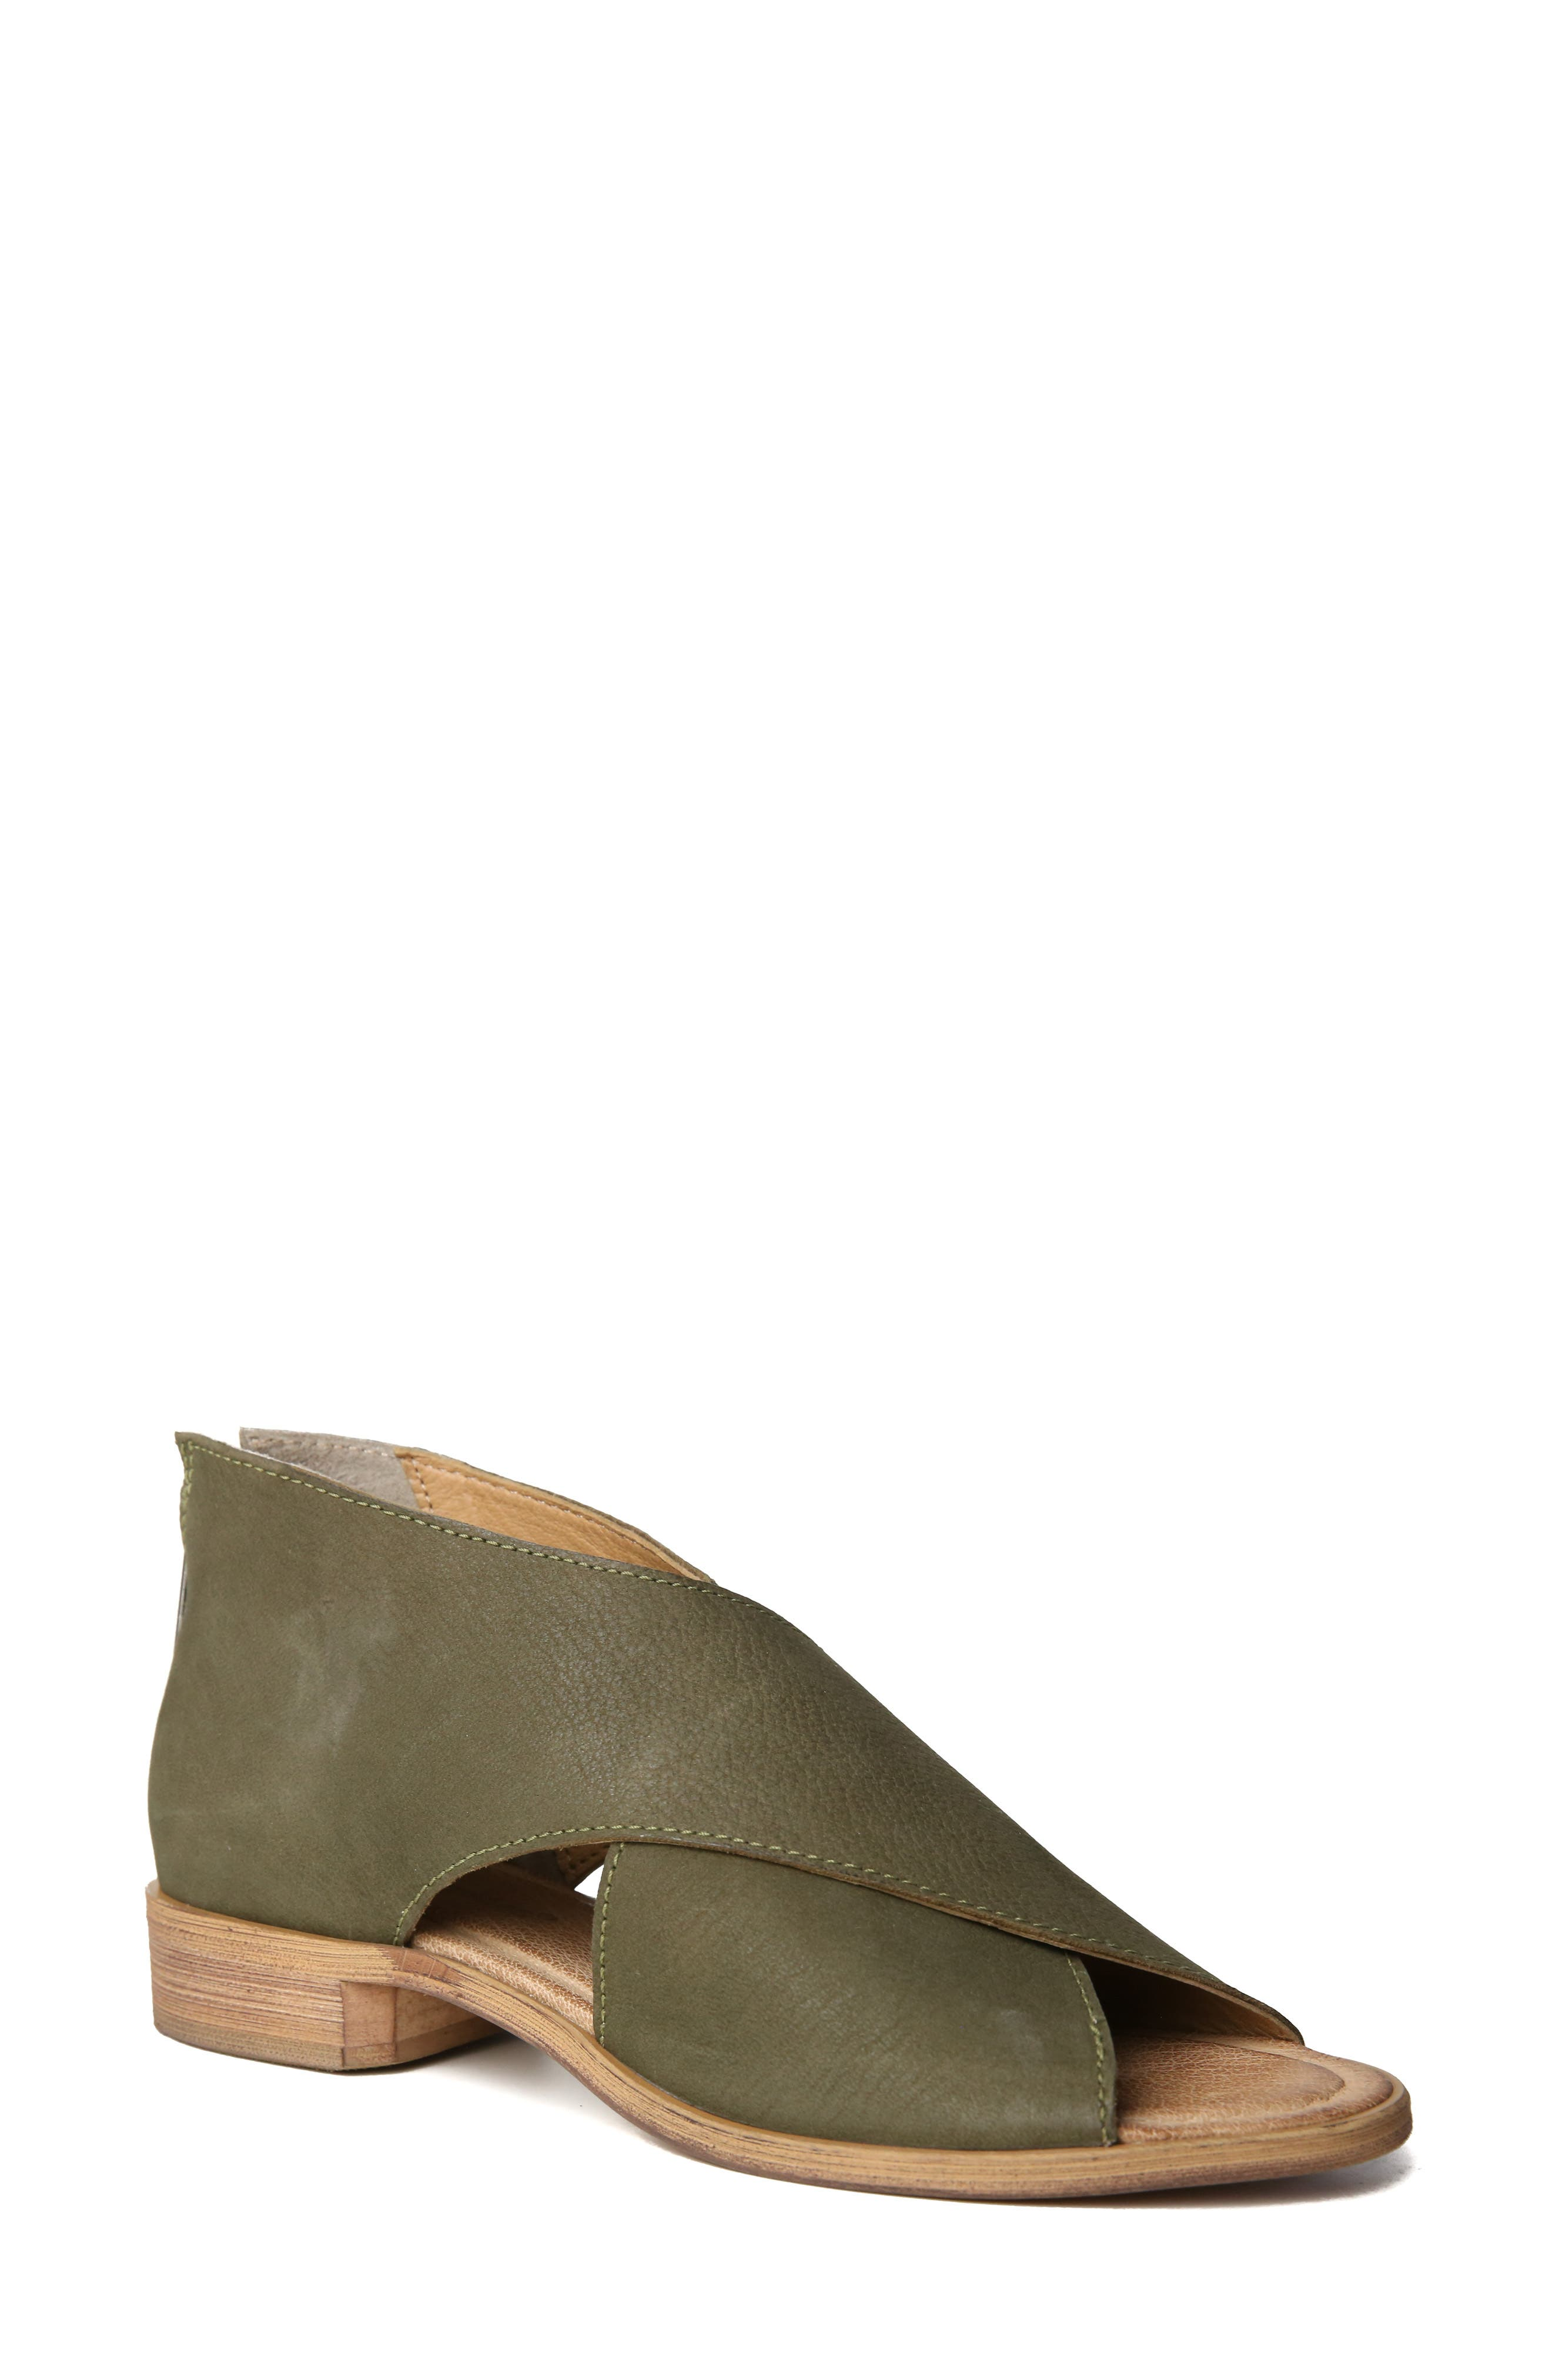 Women's Band Of Gypsies Venice Crossover Sandal